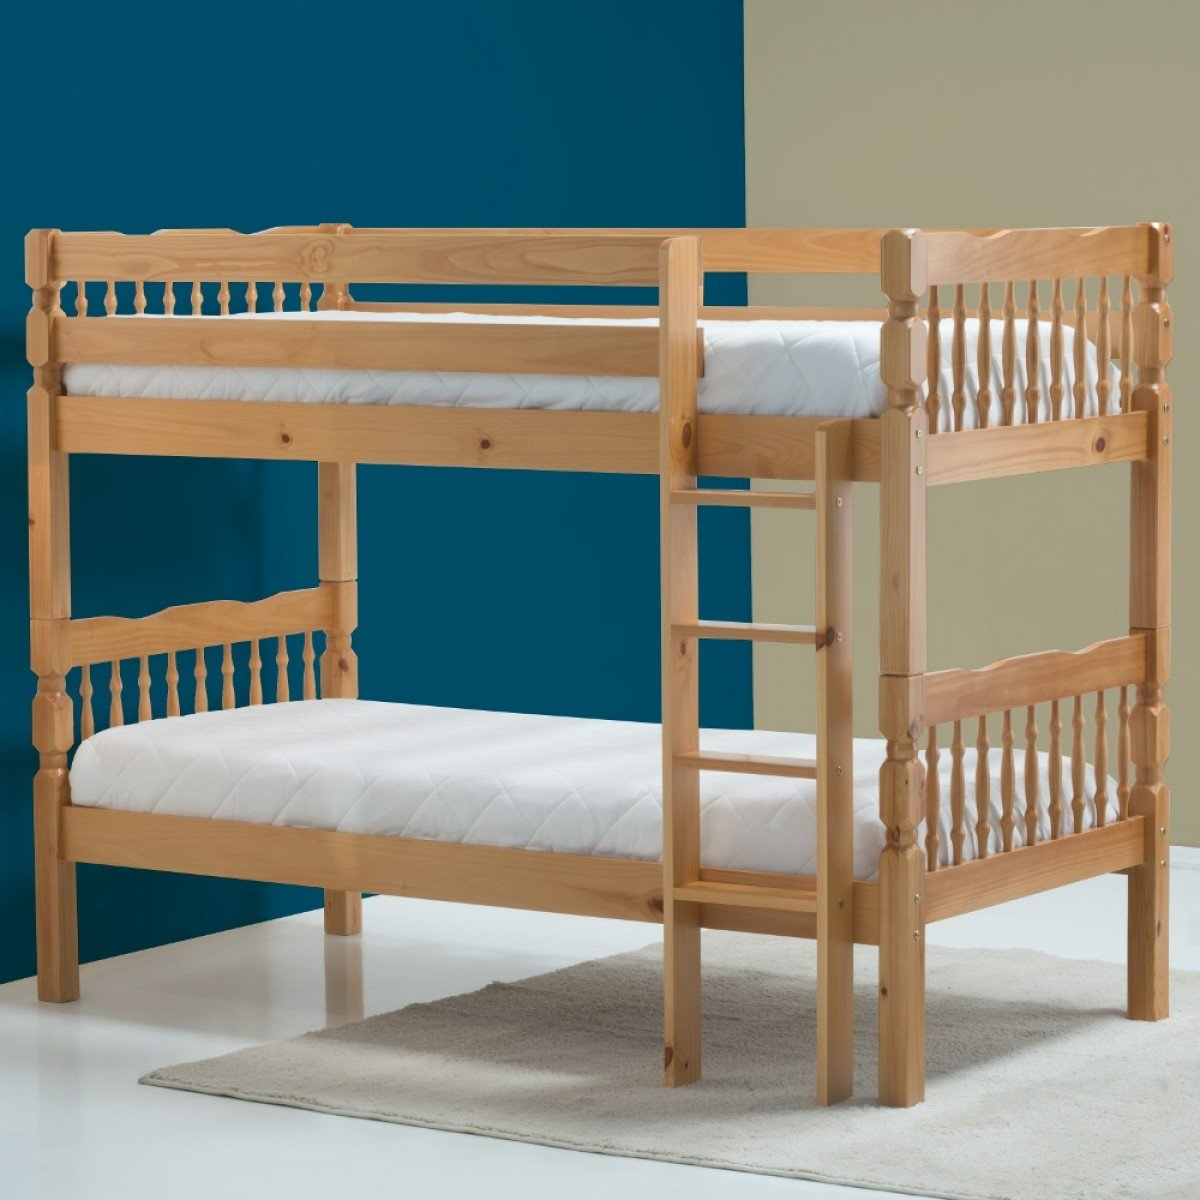 Weston Antique Solid Pine Wooden Bunk Bed